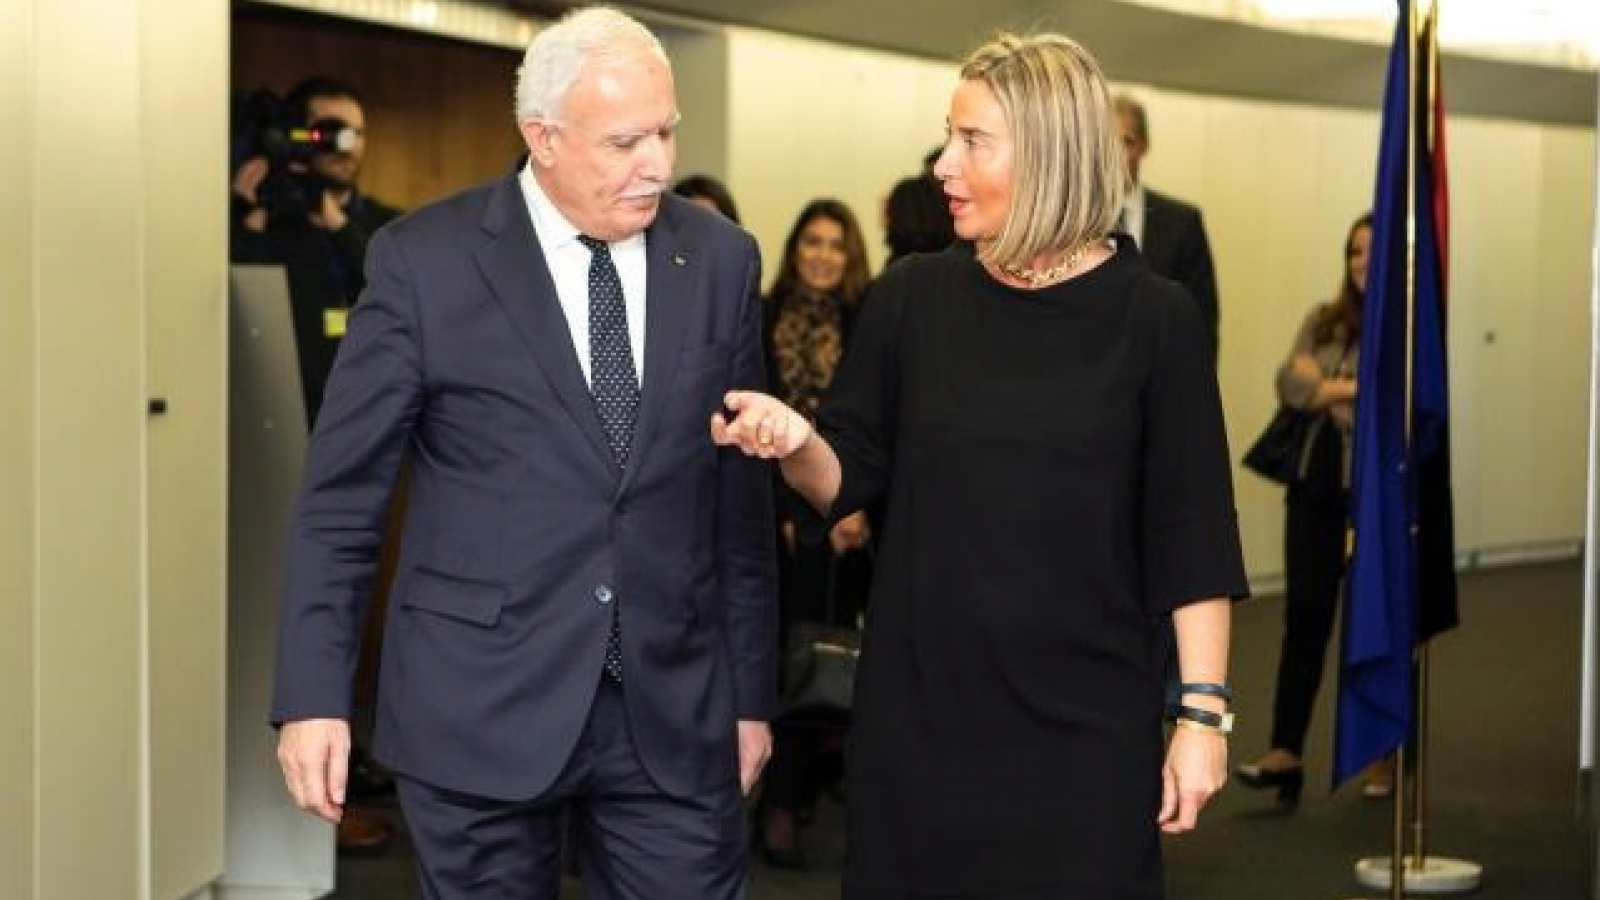 Federica Mogherini, High Representative for Foreign Affairs and Security Policy of the European Union/Vice-President of the European Commission and the Palestinian Minister of Foreign Affairs and Expatriates, Dr Riyad Al Malki.